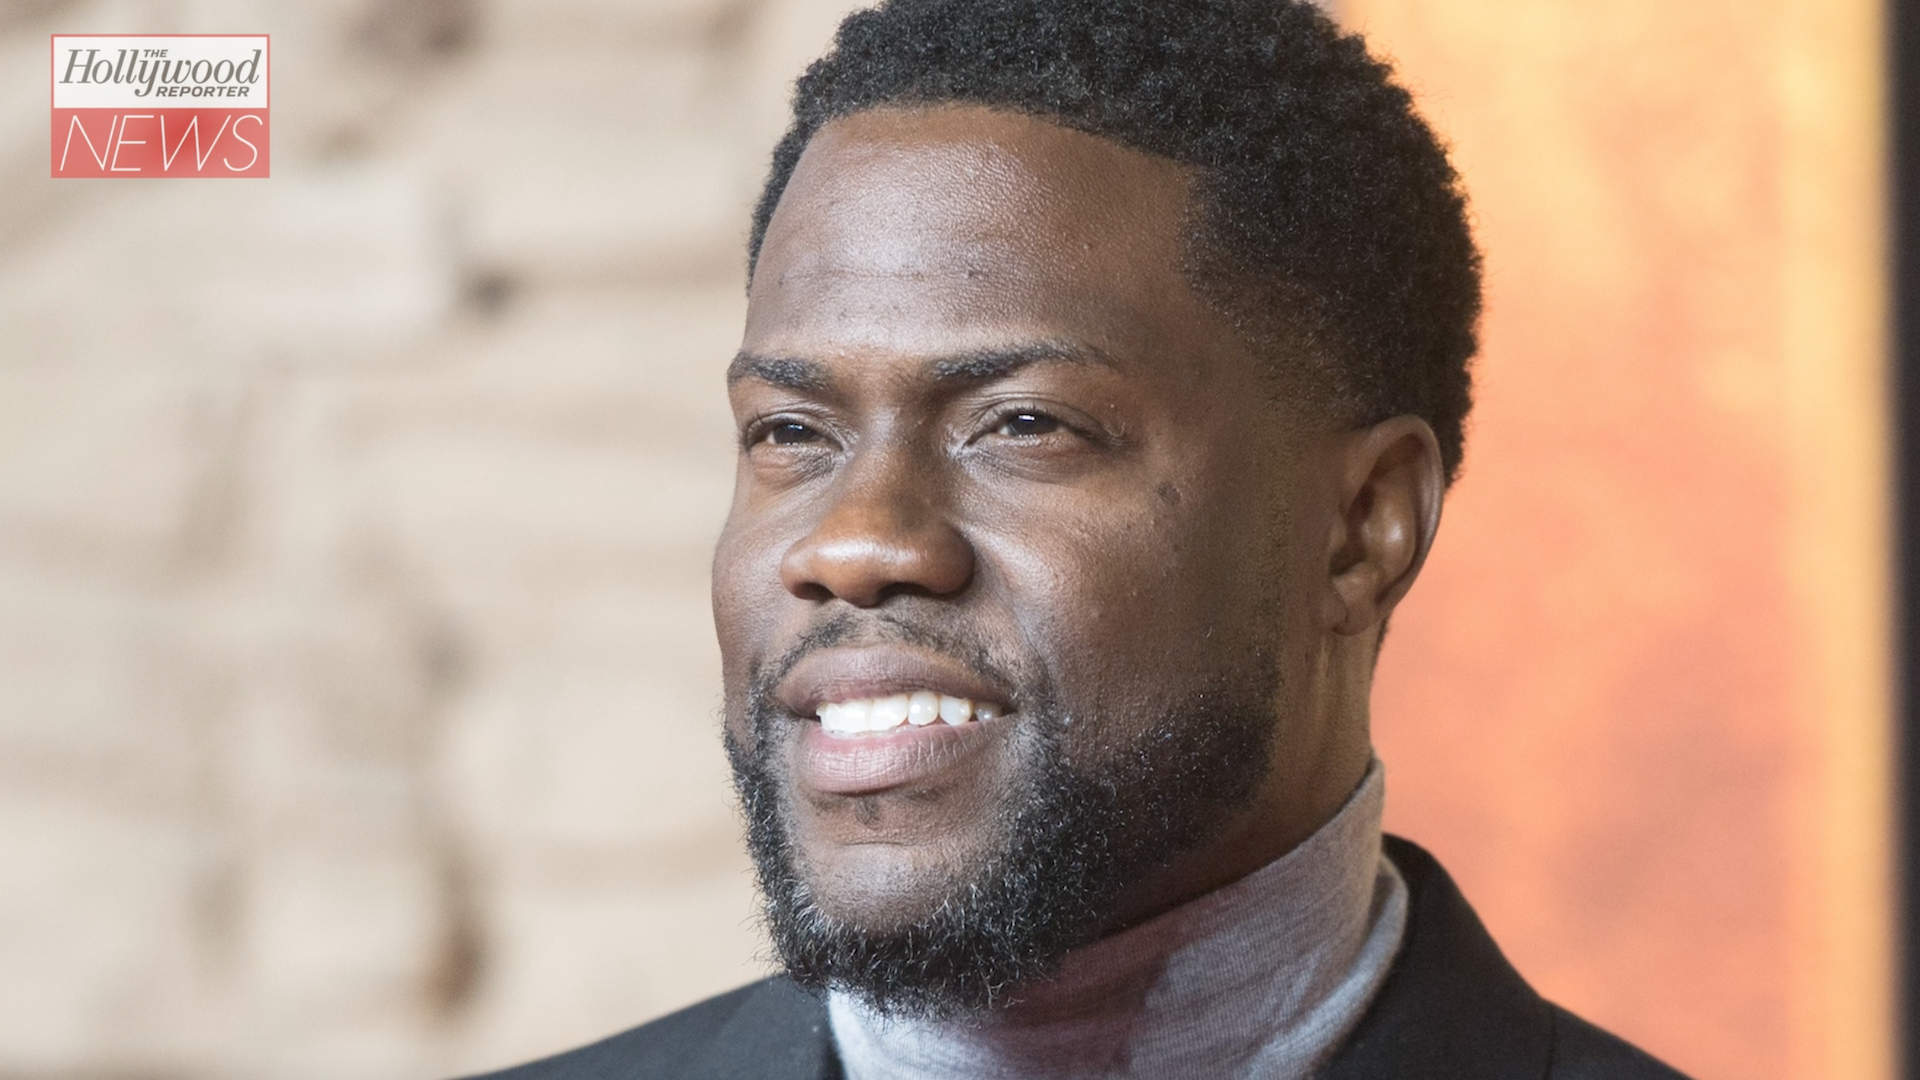 Netflix and Obamas' Higher Ground Set to Release Kevin Hart Film 'Fatherhood' | THR News